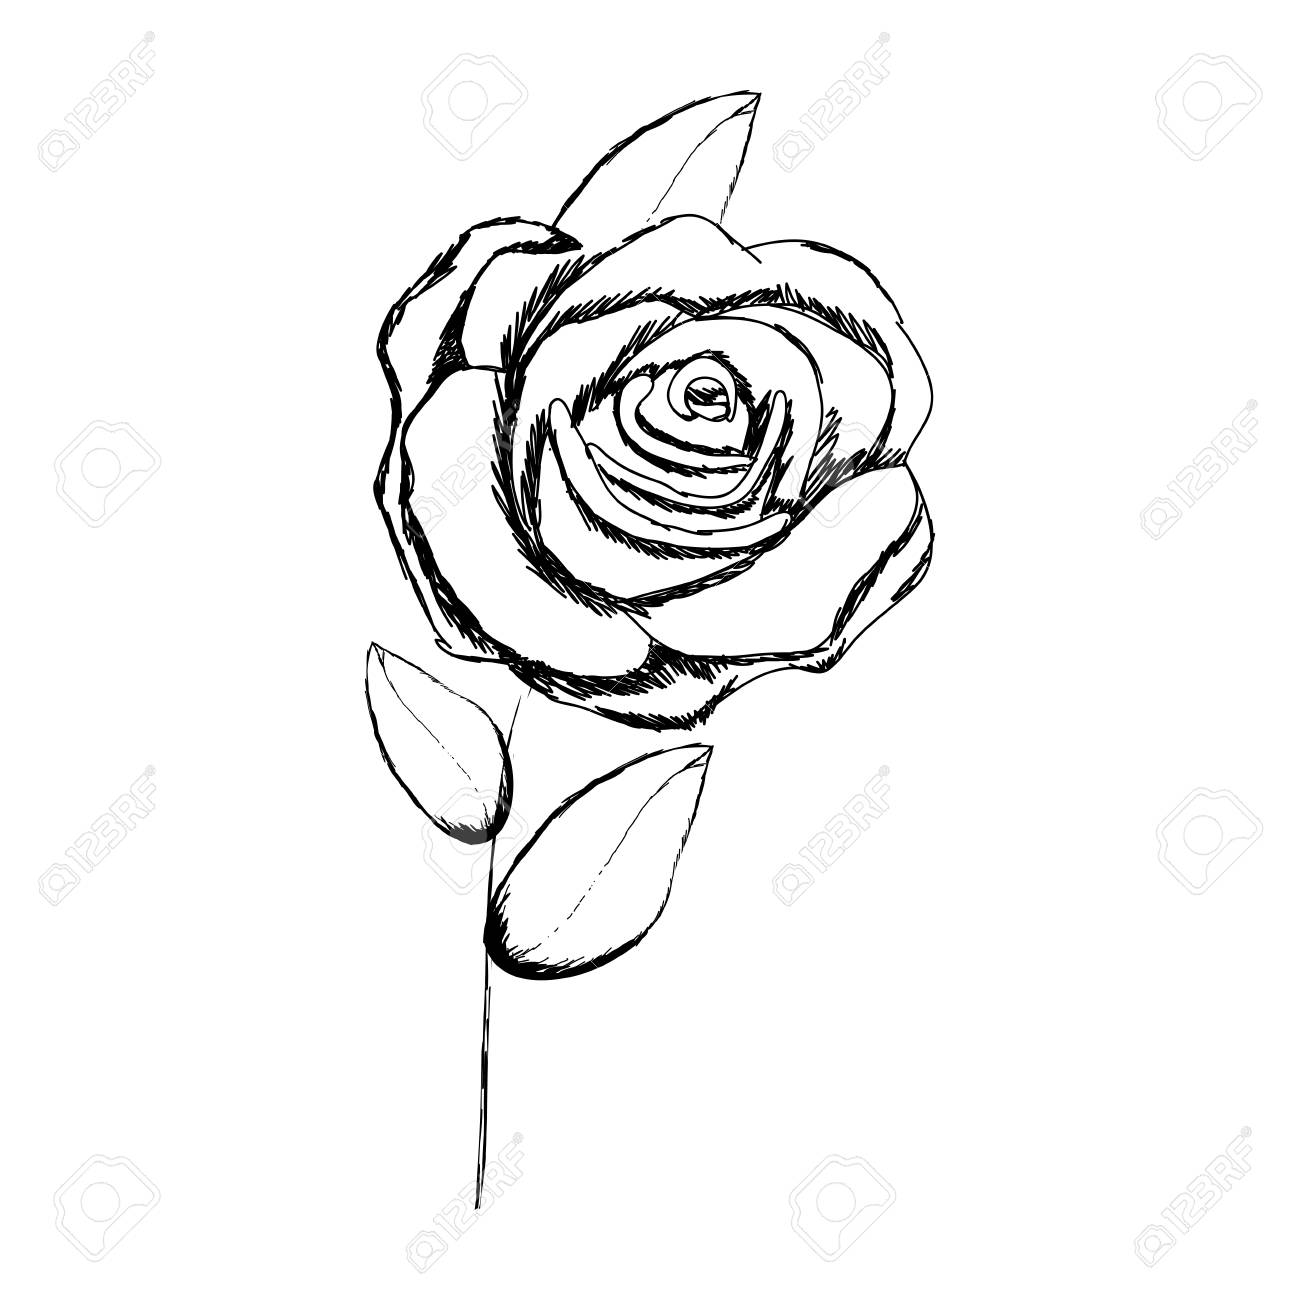 1300x1300 A Monochrome Sketch With Stem Of Rose With Flower And Leaves